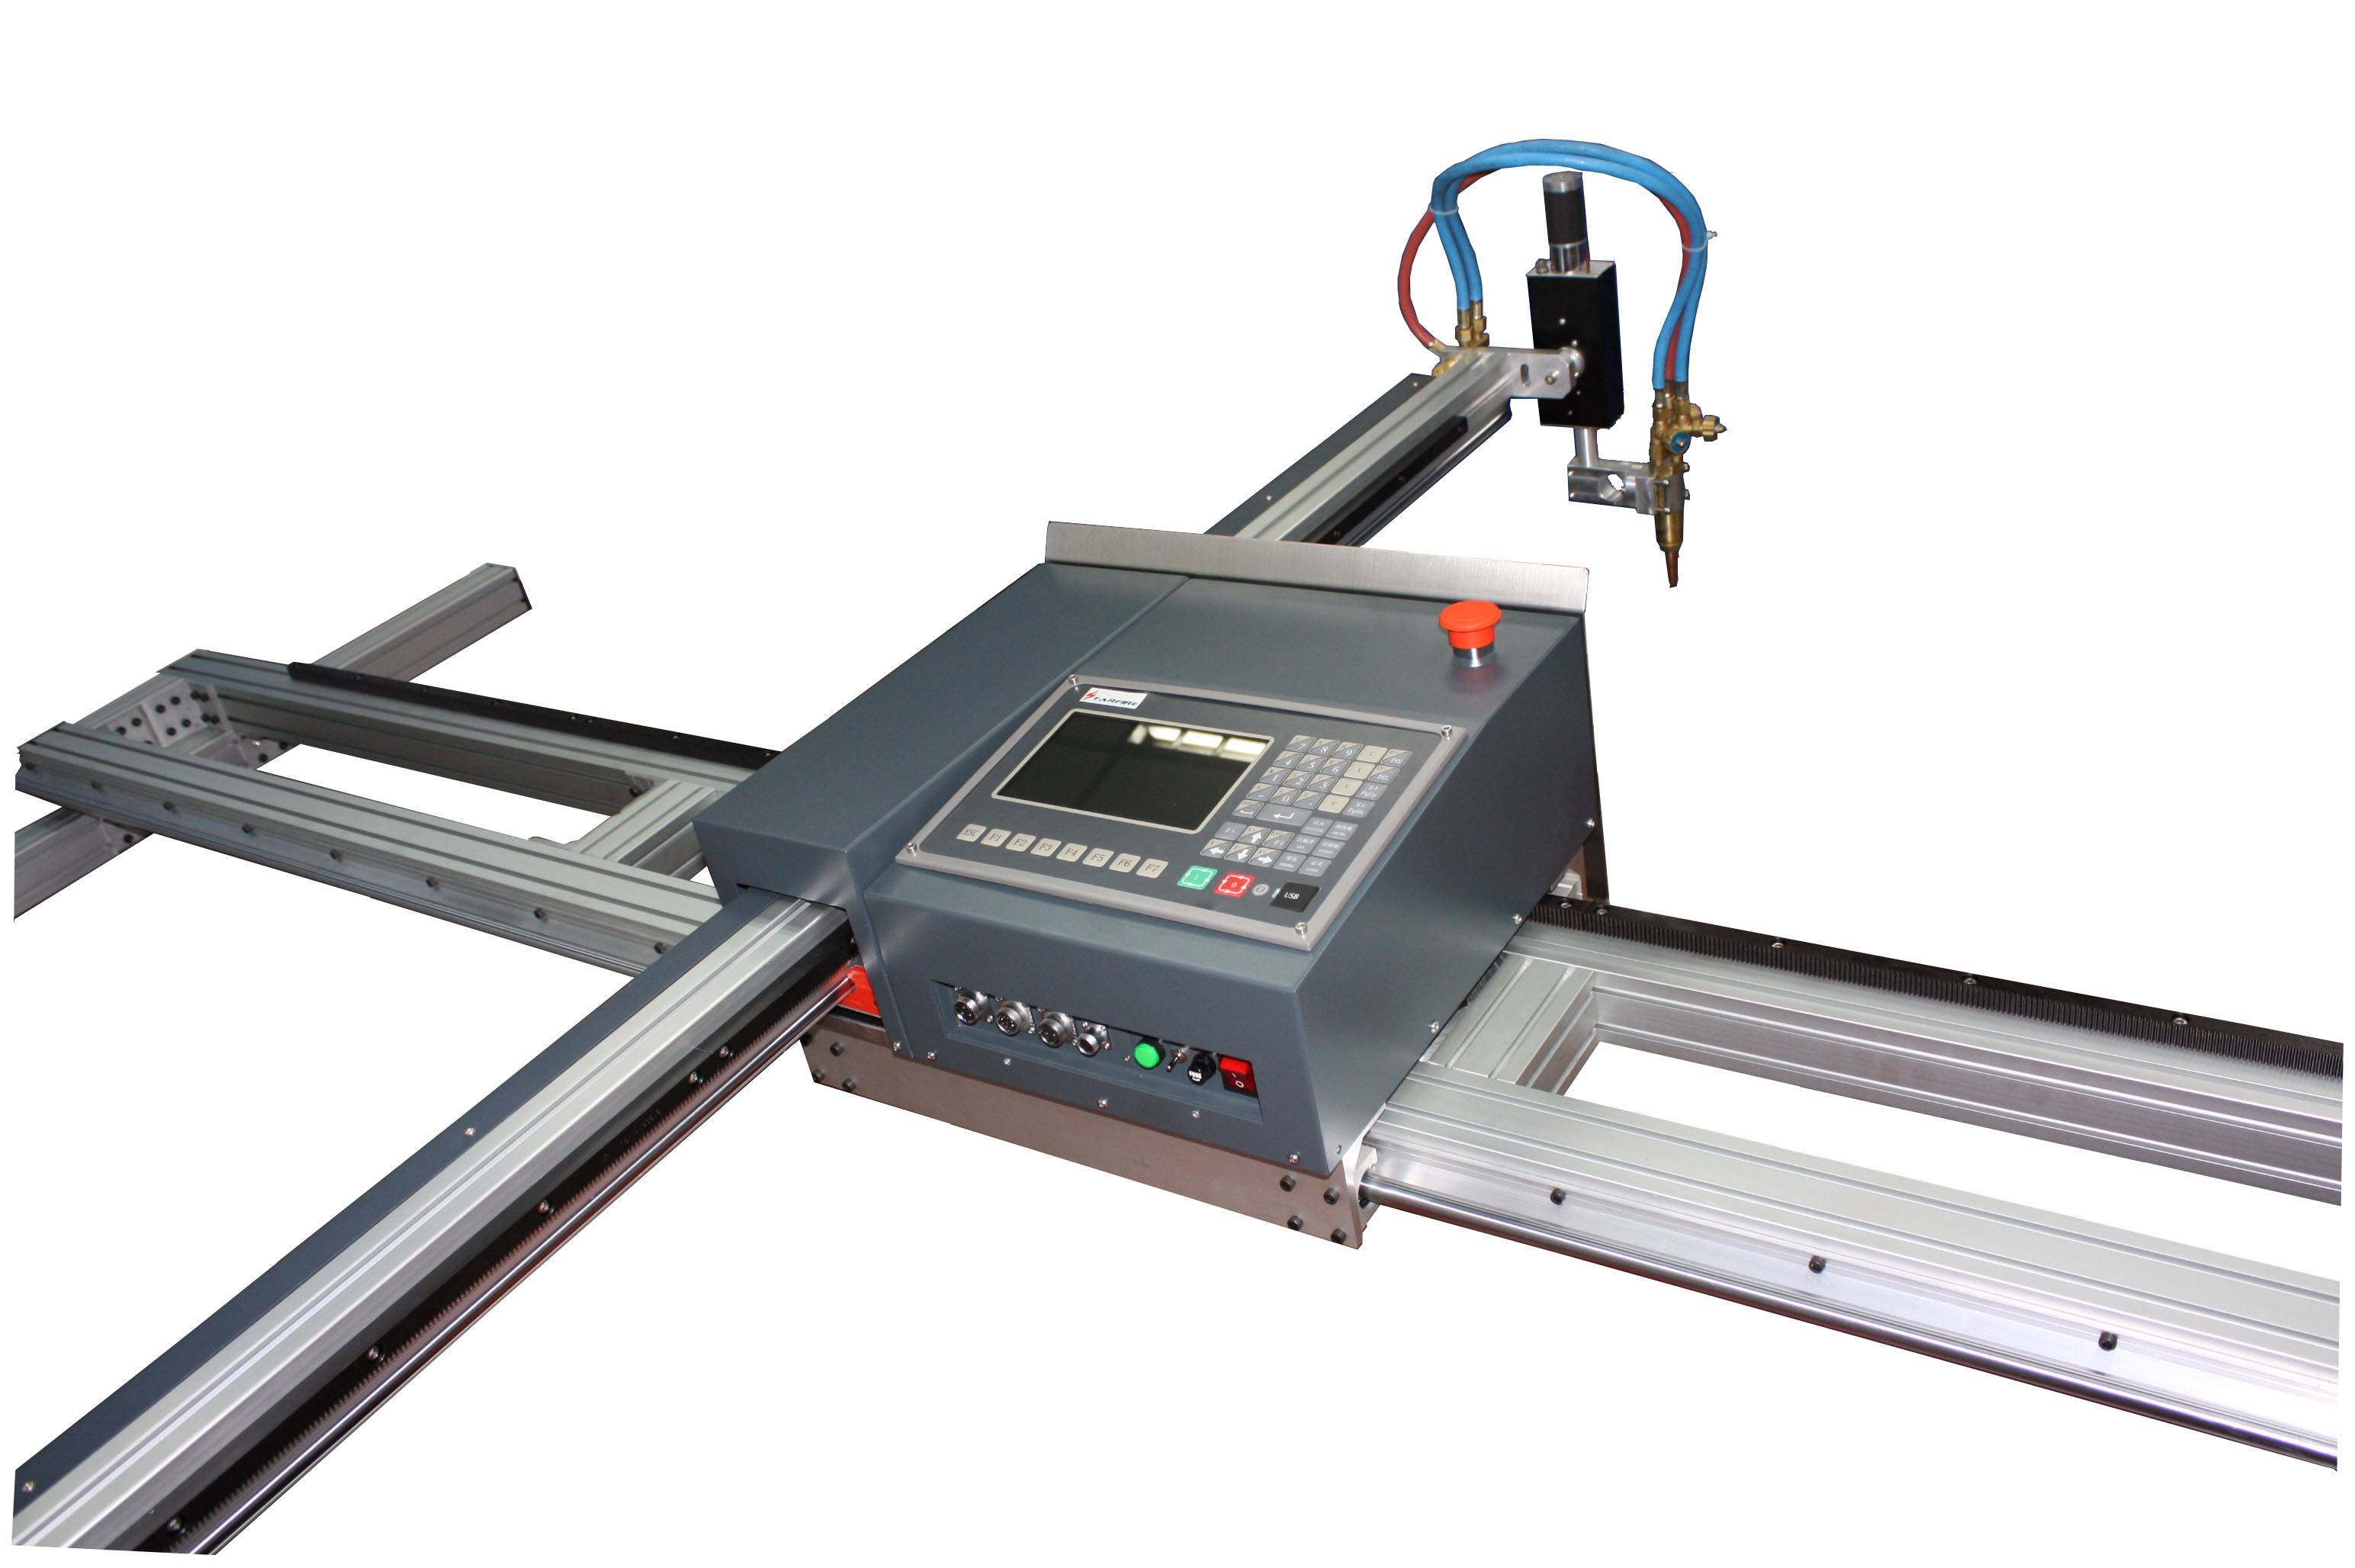 SNR portable CNC plamsa and flame cutting machine from China